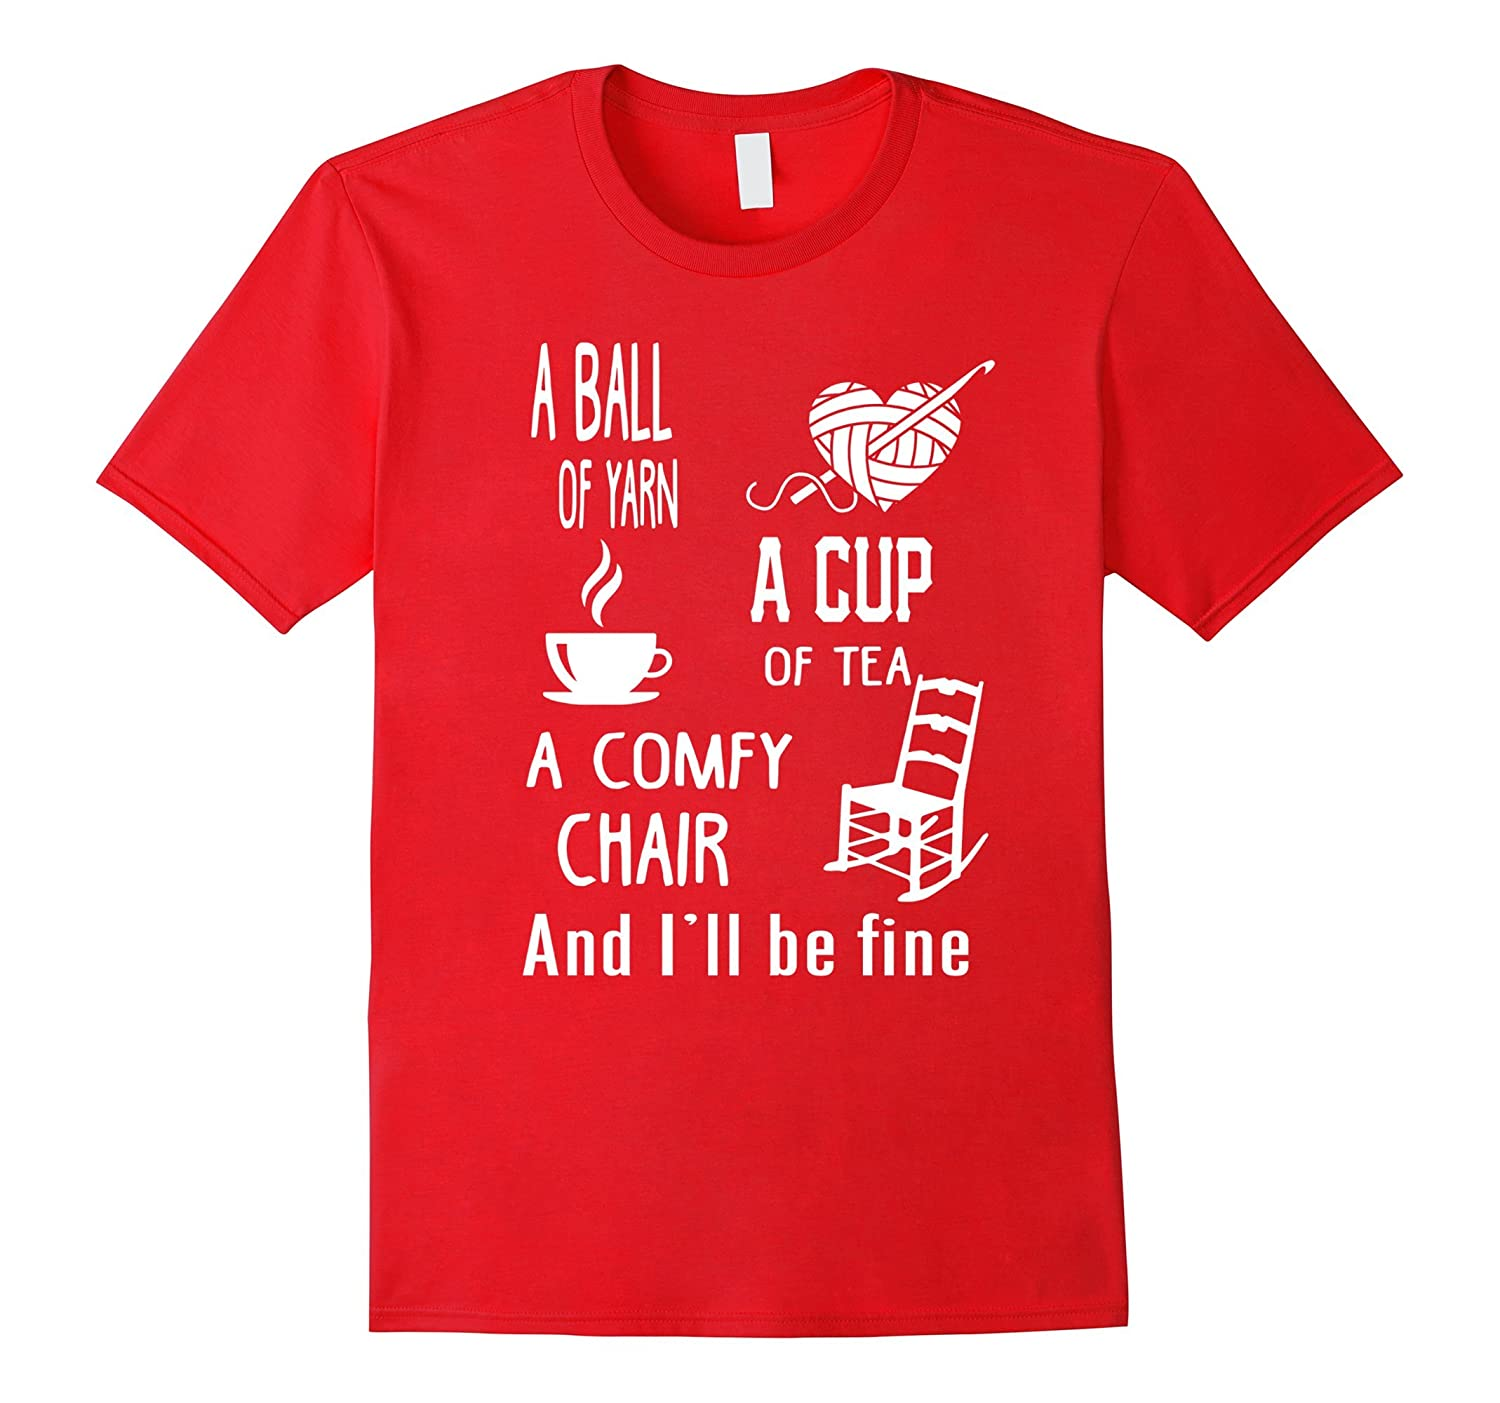 A Ball Of Yarn A Cup Of Tea A Comfy Chair And I'll be fine-ah my shirt one gift